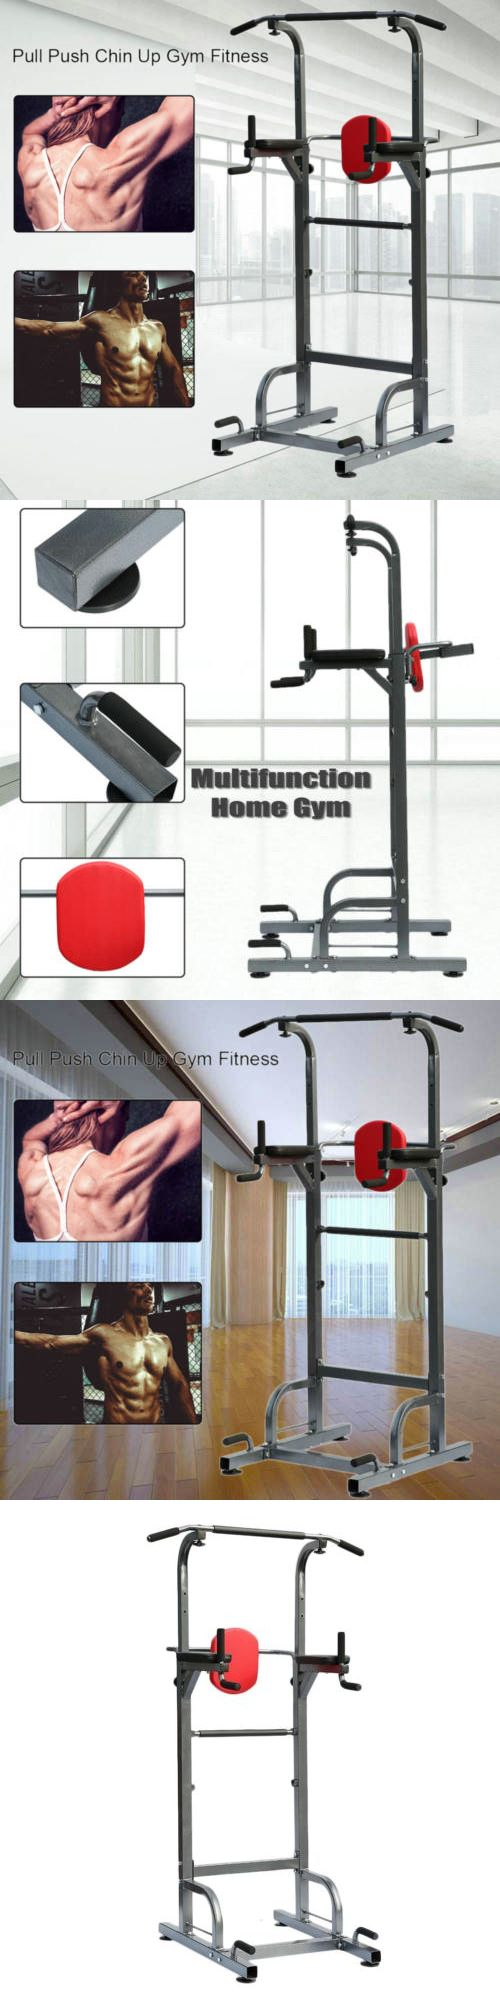 Push Up Stands 158925: Heavy Duty Dip Station Power Tower Pull Push Chin Up Bar Home Gym Fitness Stand -> BUY IT NOW ONLY: $94.05 on eBay!